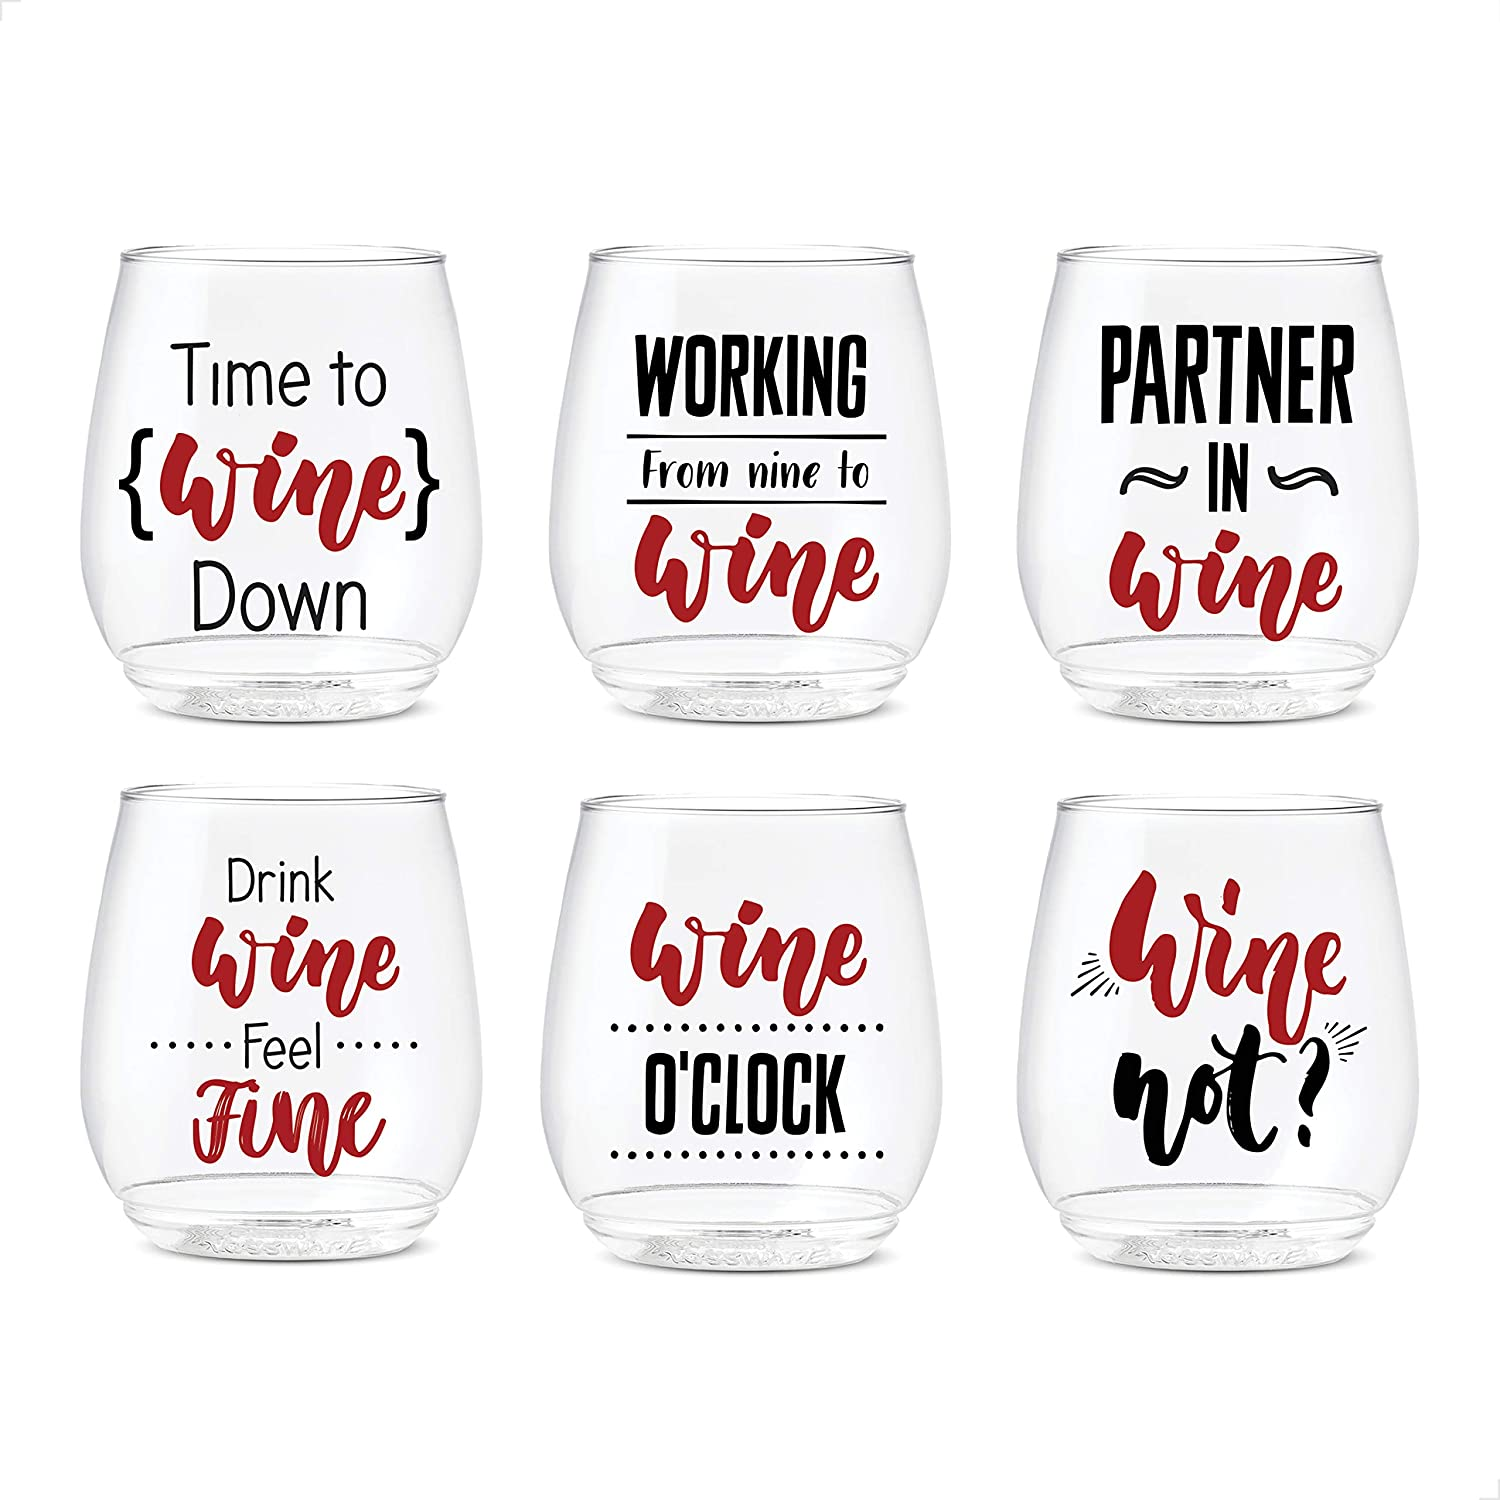 TOSSWARE 14oz All About Wine Series SET OF 6, Recyclable, Unbreakable & Crystal Clear Plastic Printed Glasses